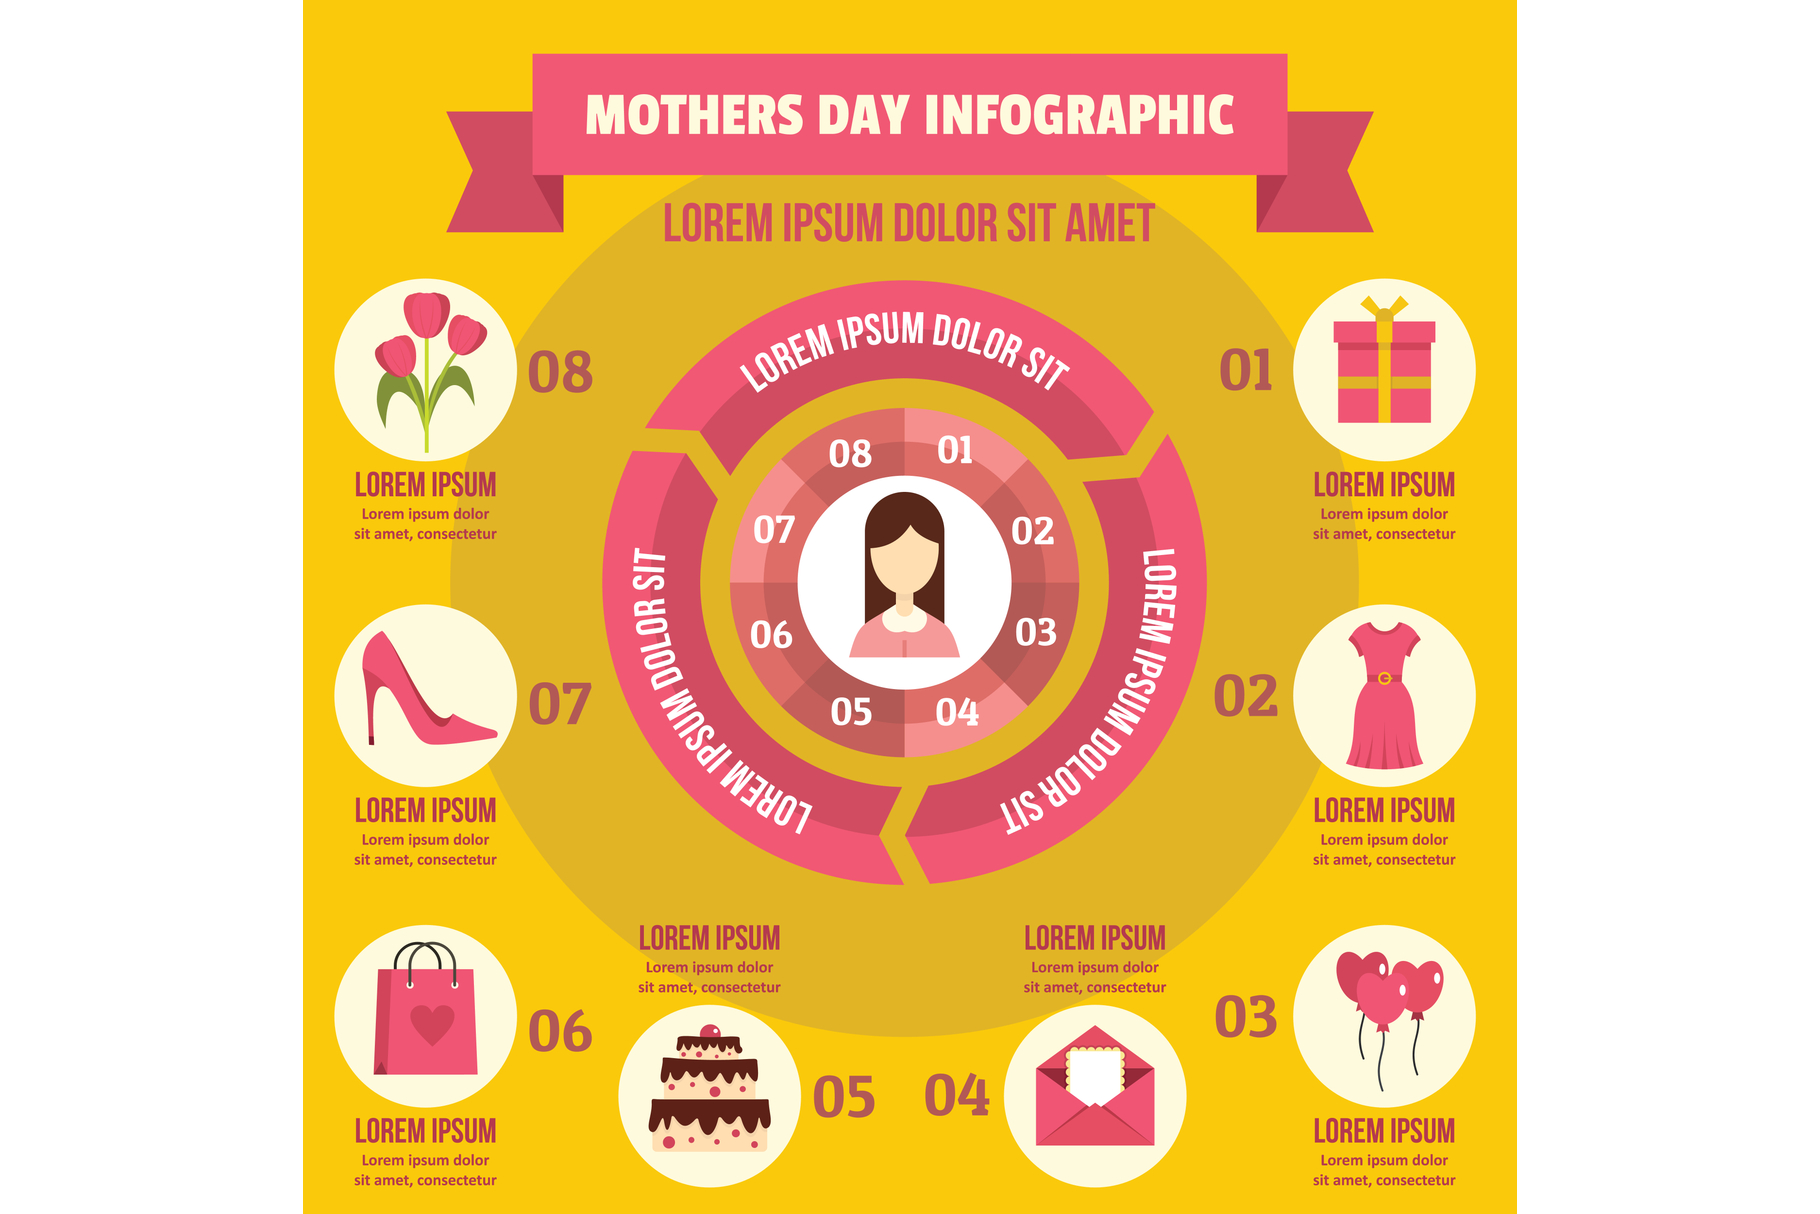 Mothers day infographic concept, flat style example image 1